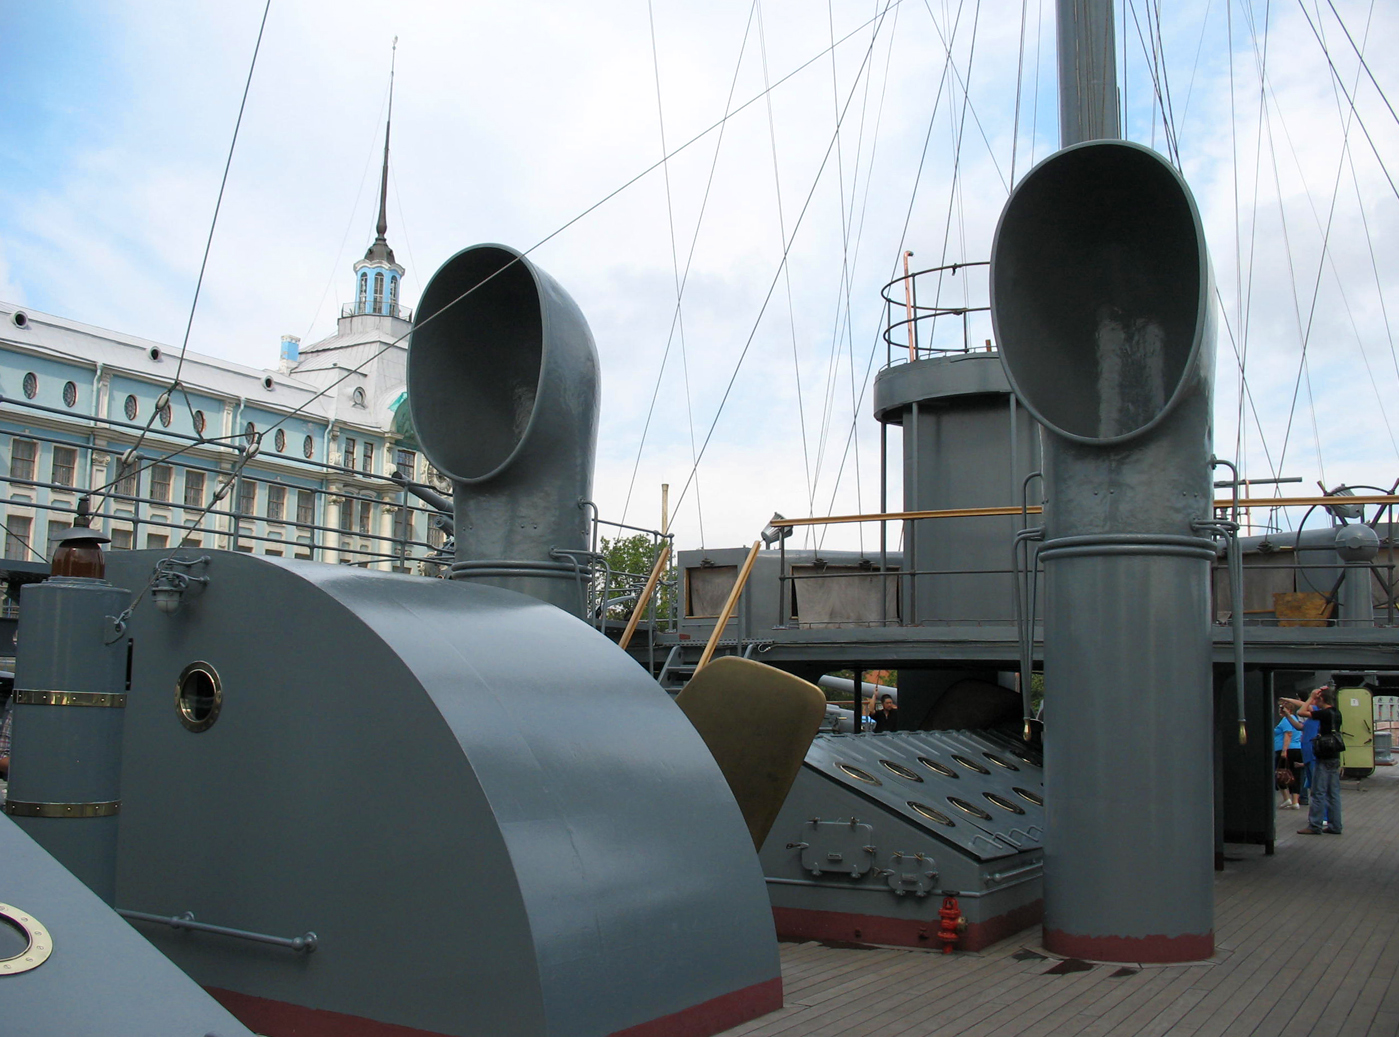 File:Cruiser Aurora. Pipes of air inlets.jpg - Wikimedia Commons